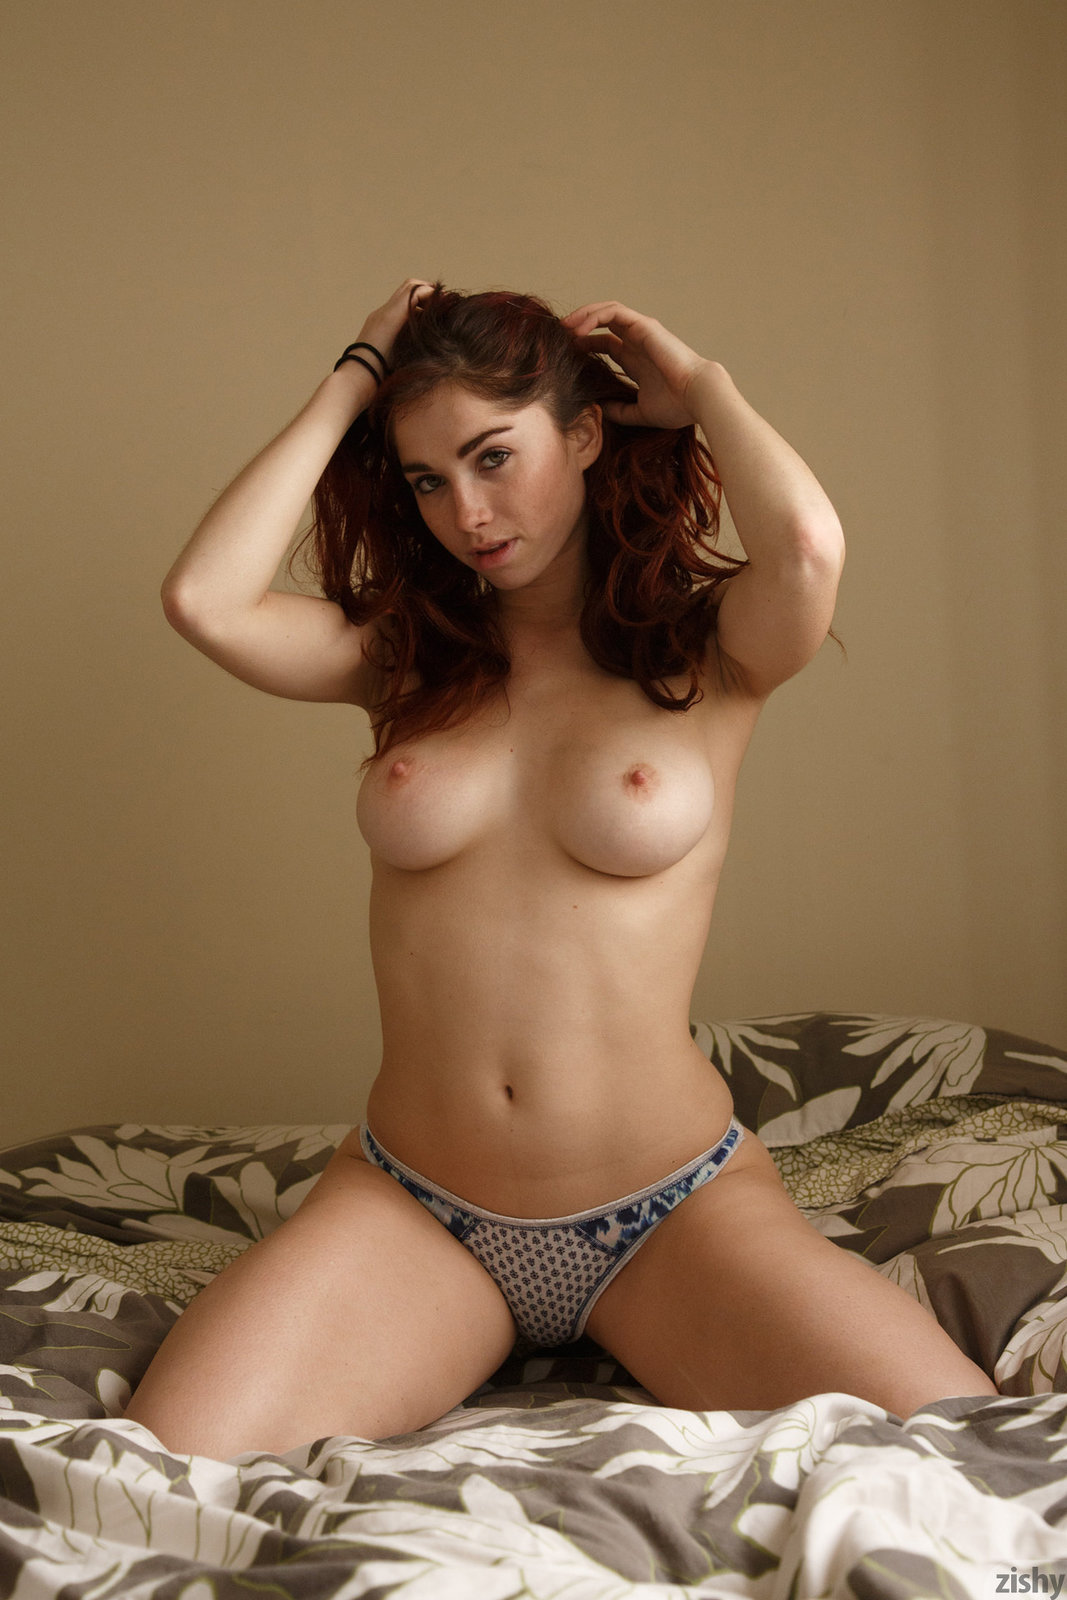 Jazz Reilly in Natural Yelps II by Zishy 12 photos